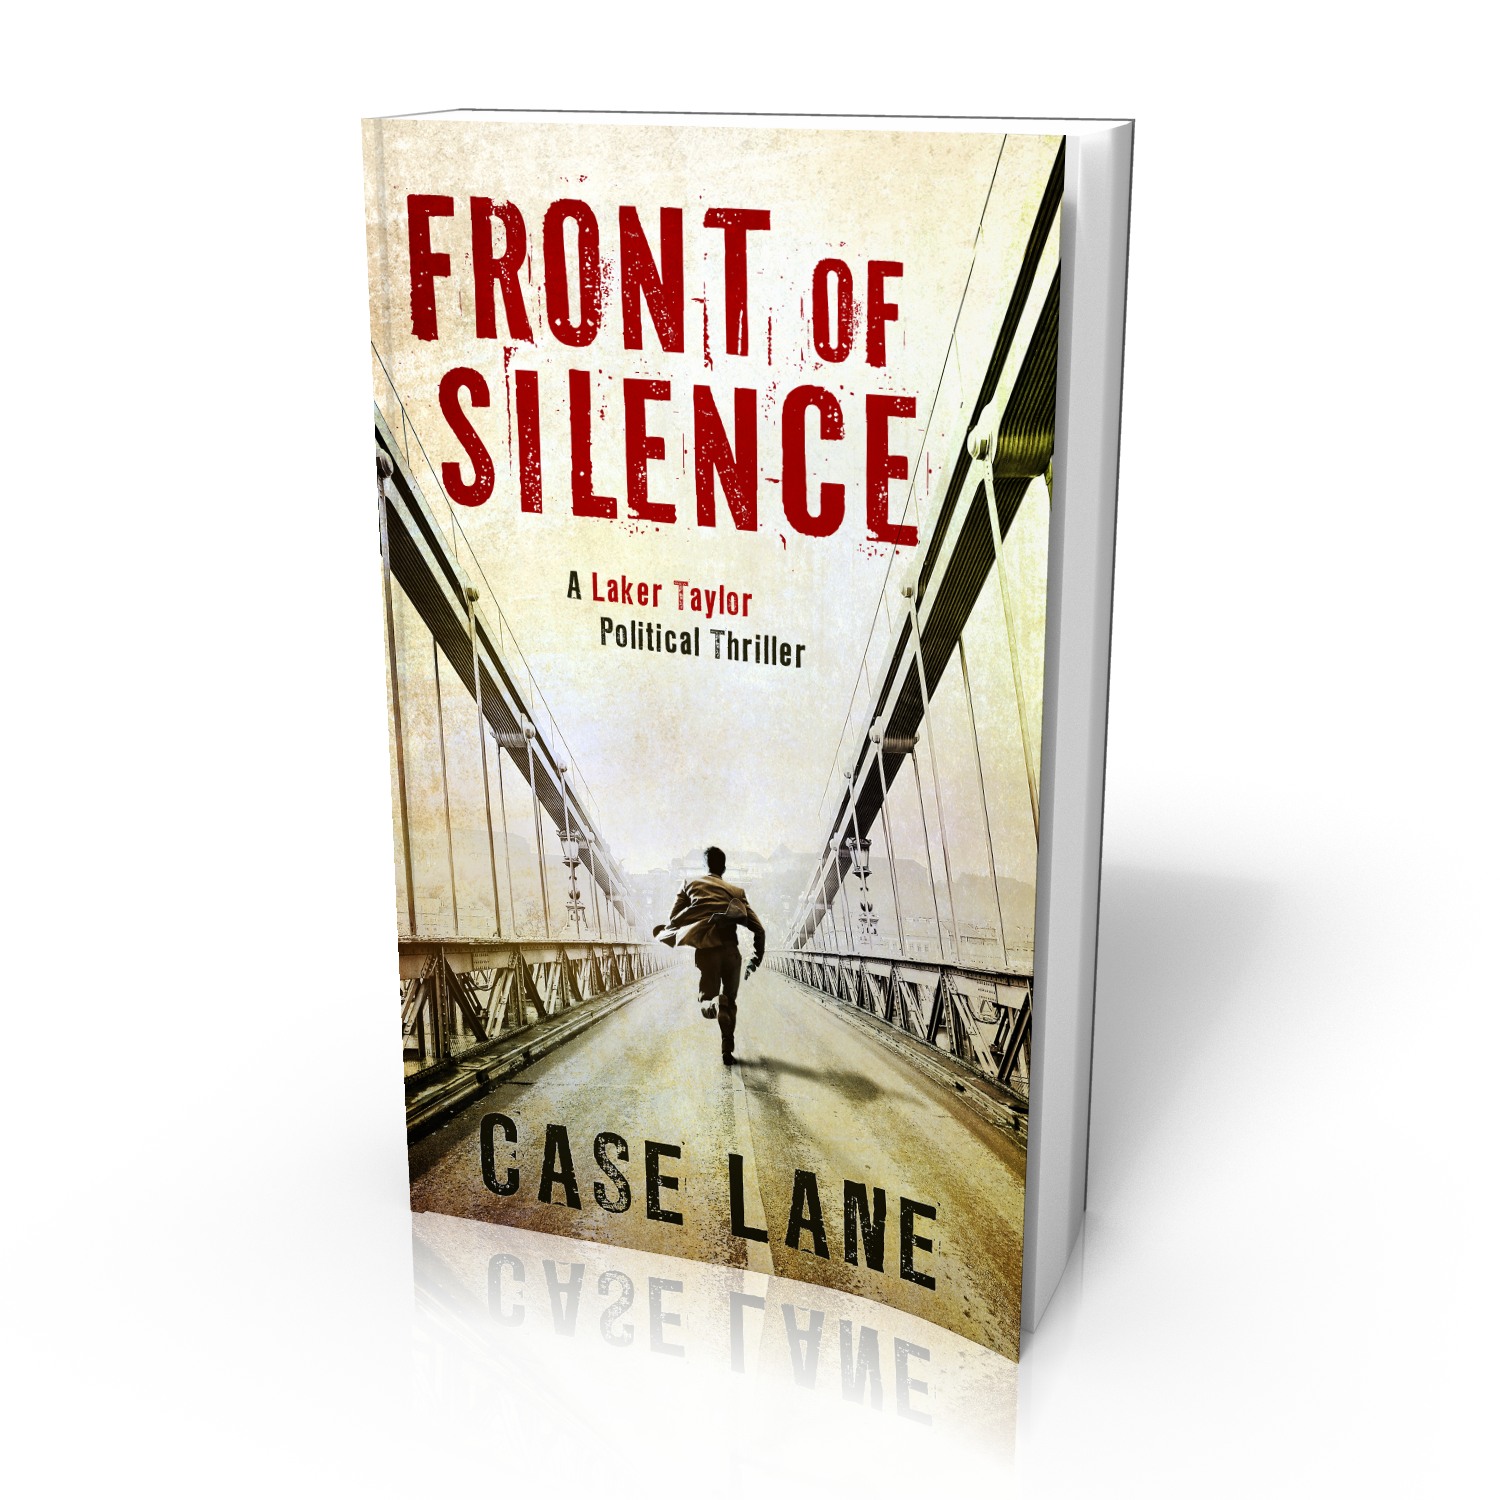 Case Lane's Political Thriller Book Series